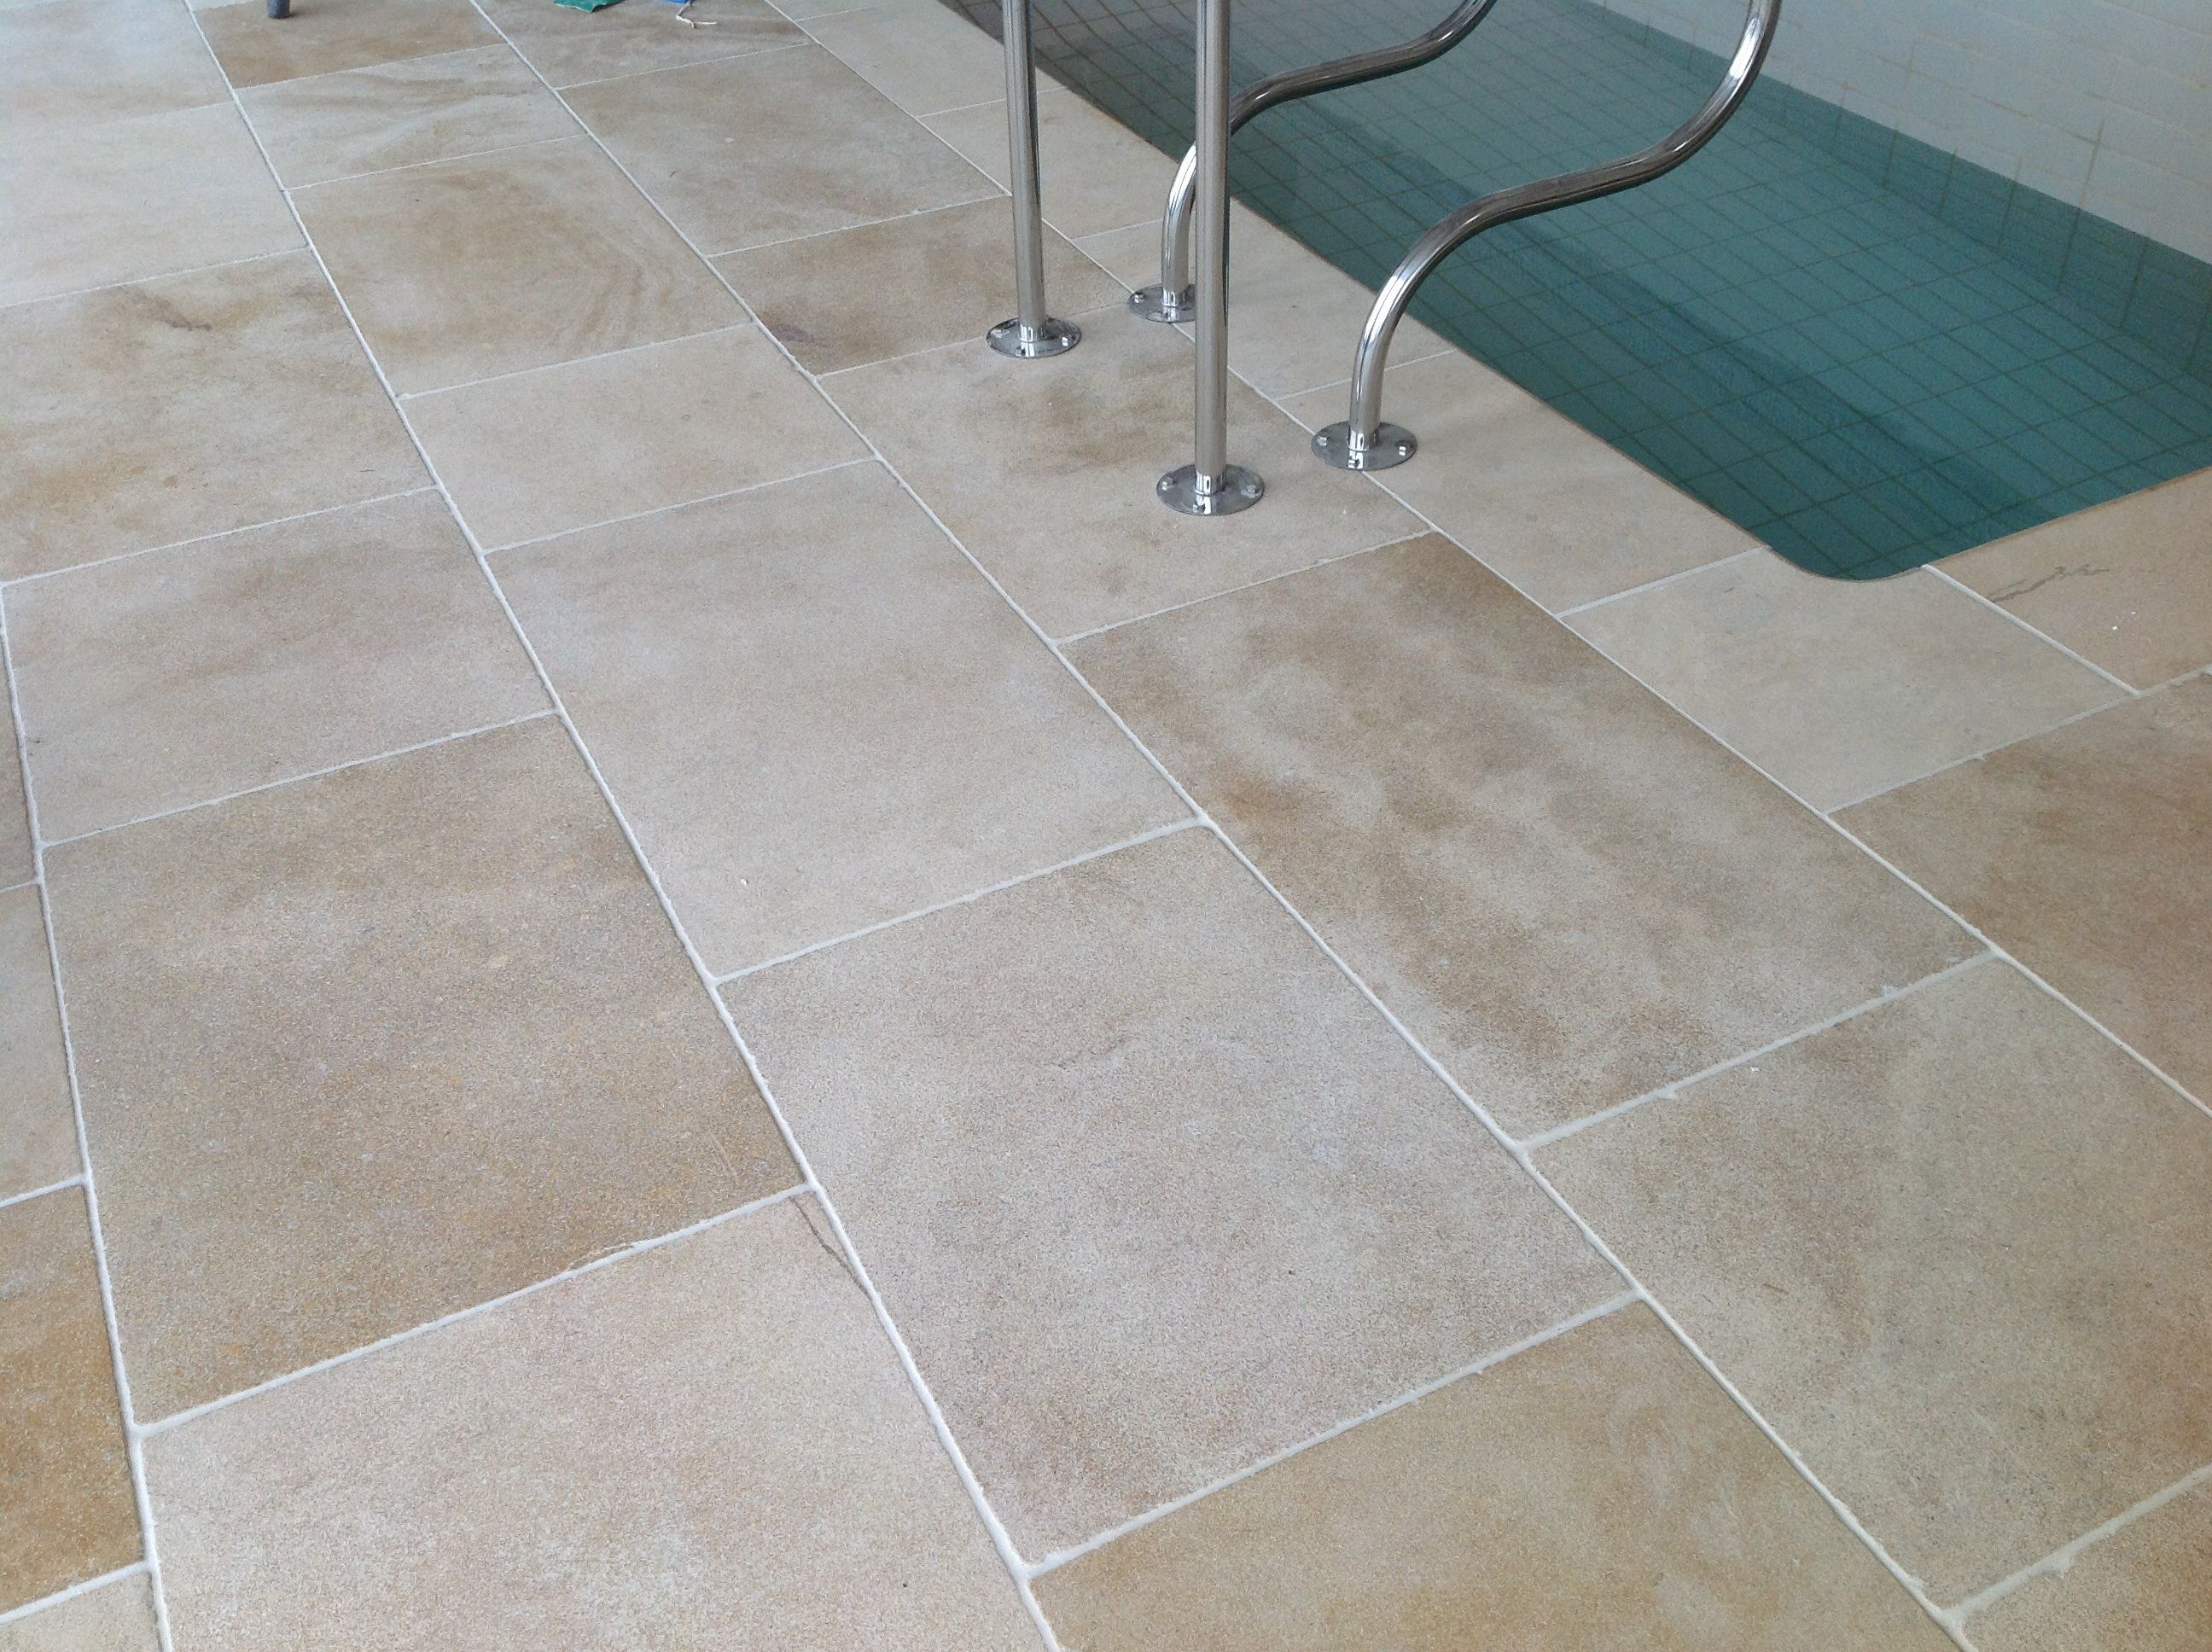 Beige stone tiles for inside and outside faringdon stone tiles have floor wall tile specialists berkshire natural stone consulting dailygadgetfo Images